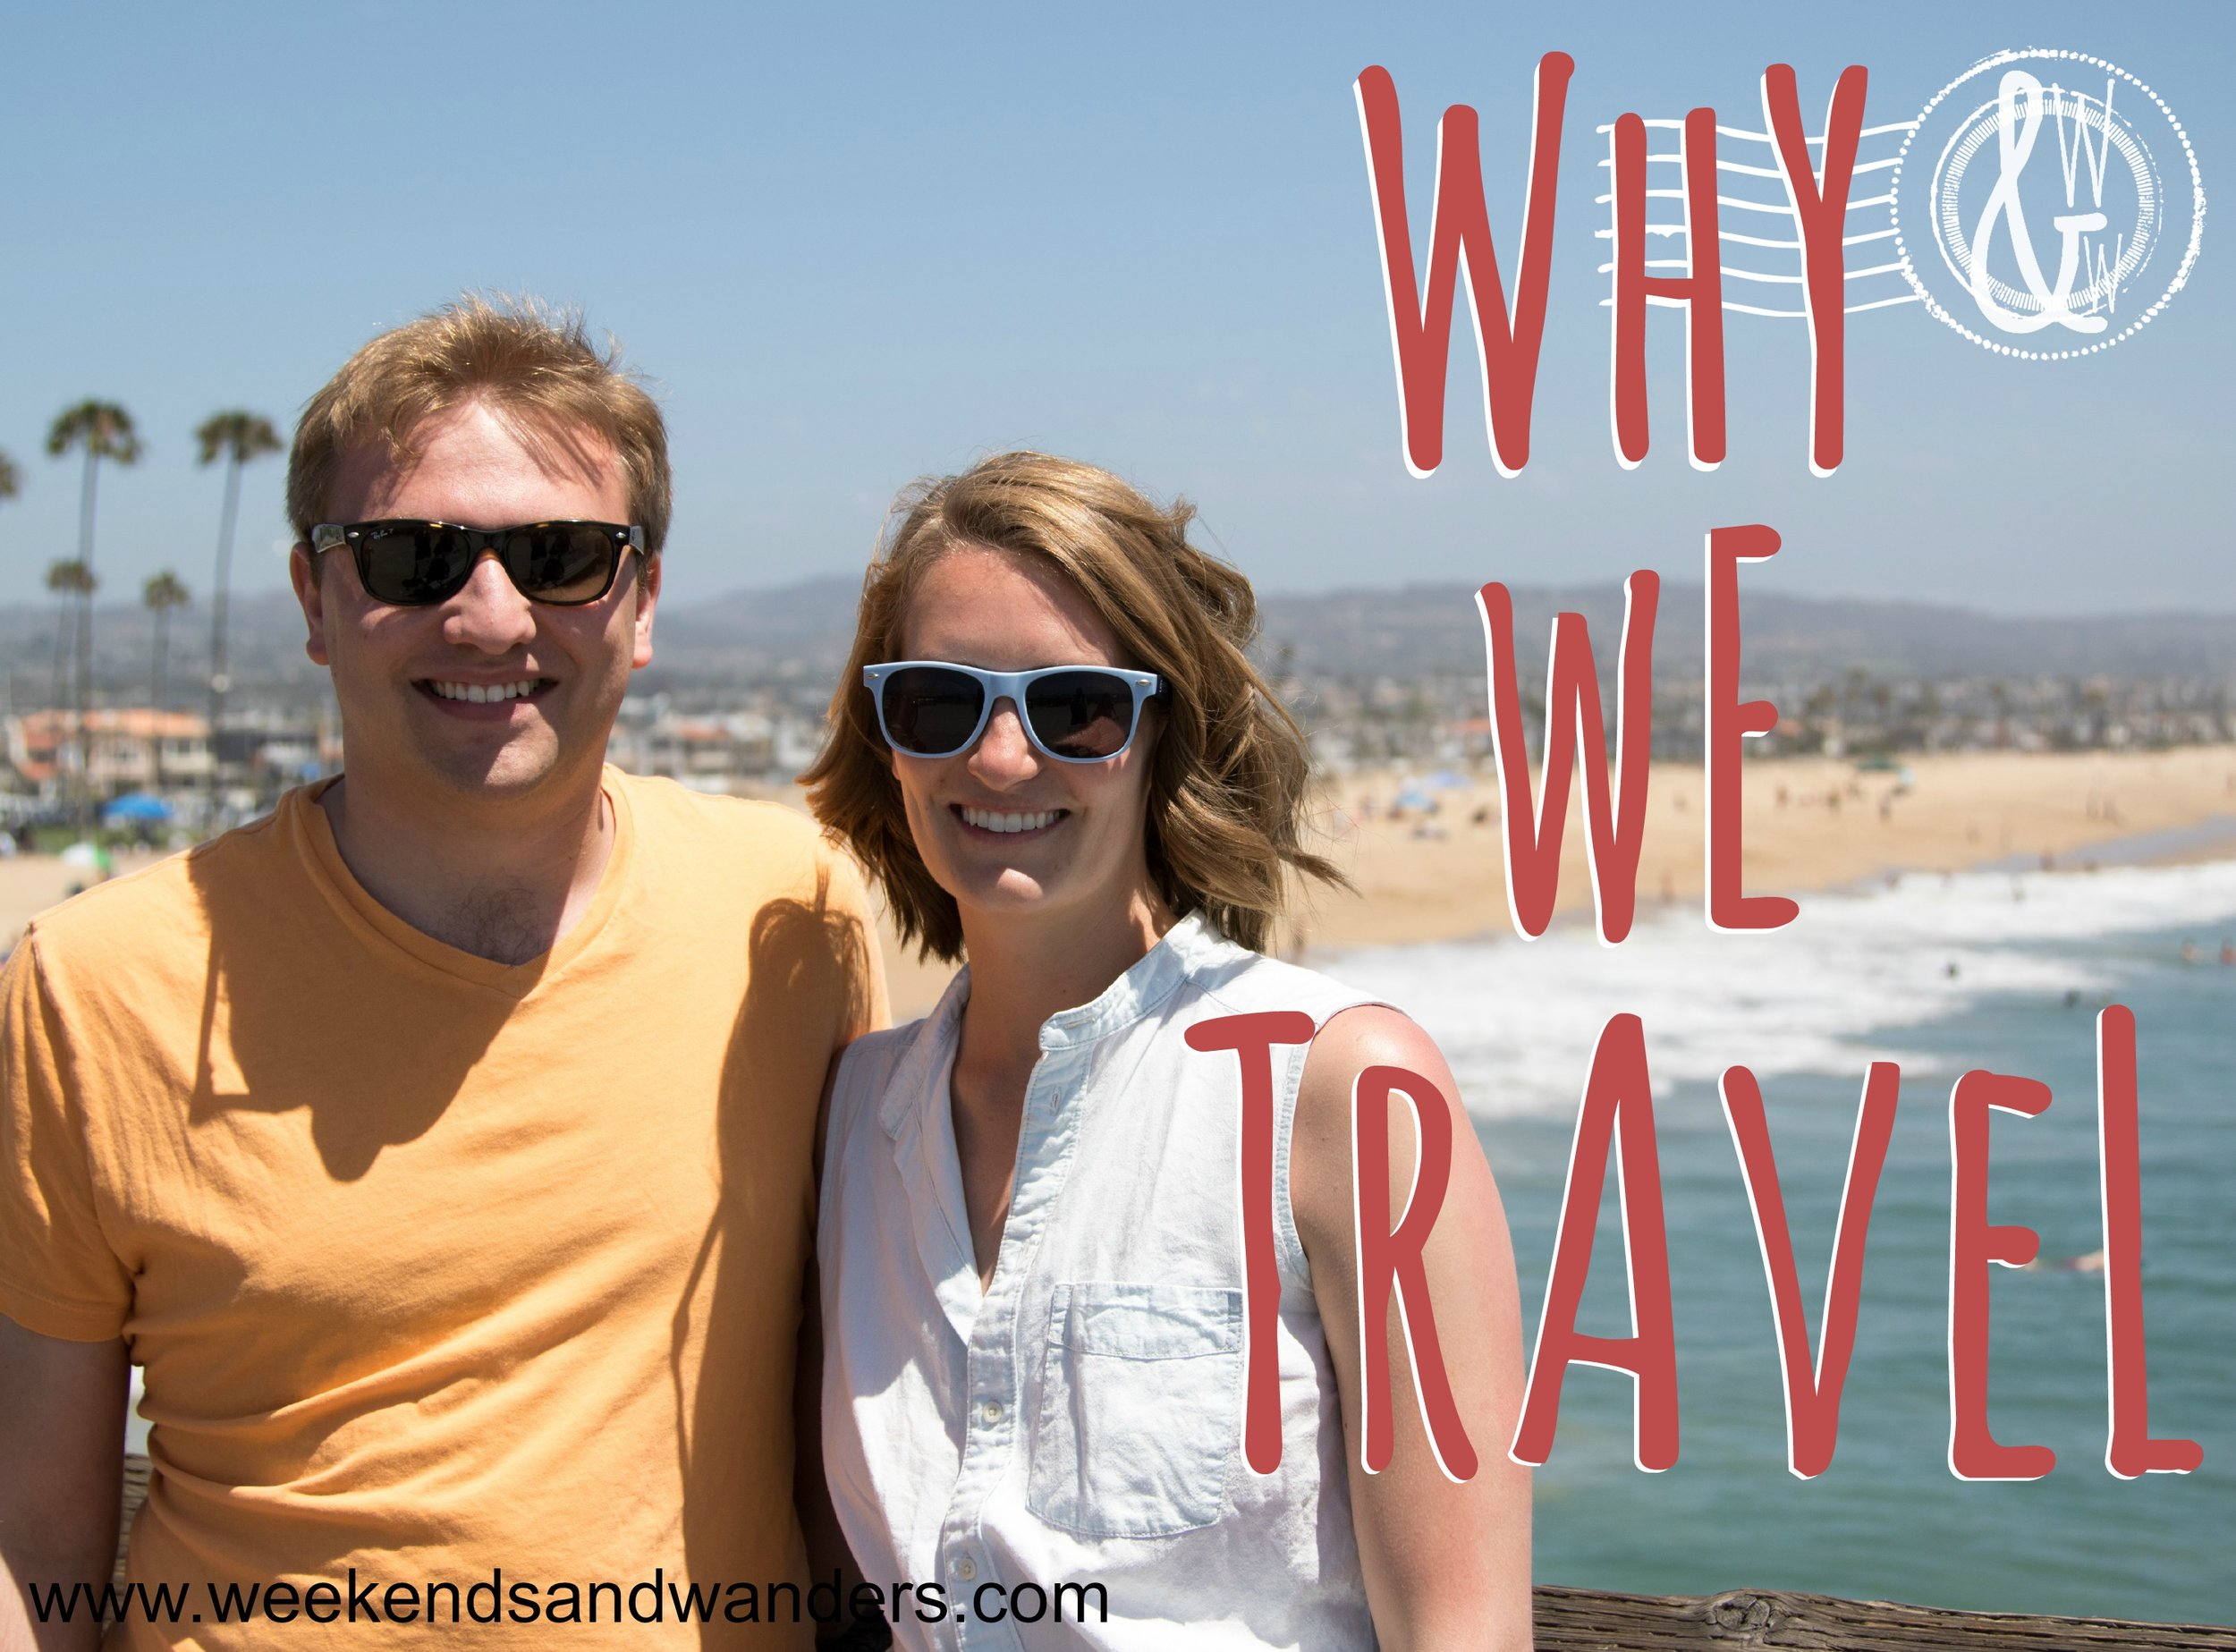 Ever wonder why your wanderlust friends do what they do? Why they spend so much time and money away from home? Well this is why we do what we do; this is Why We Travel!